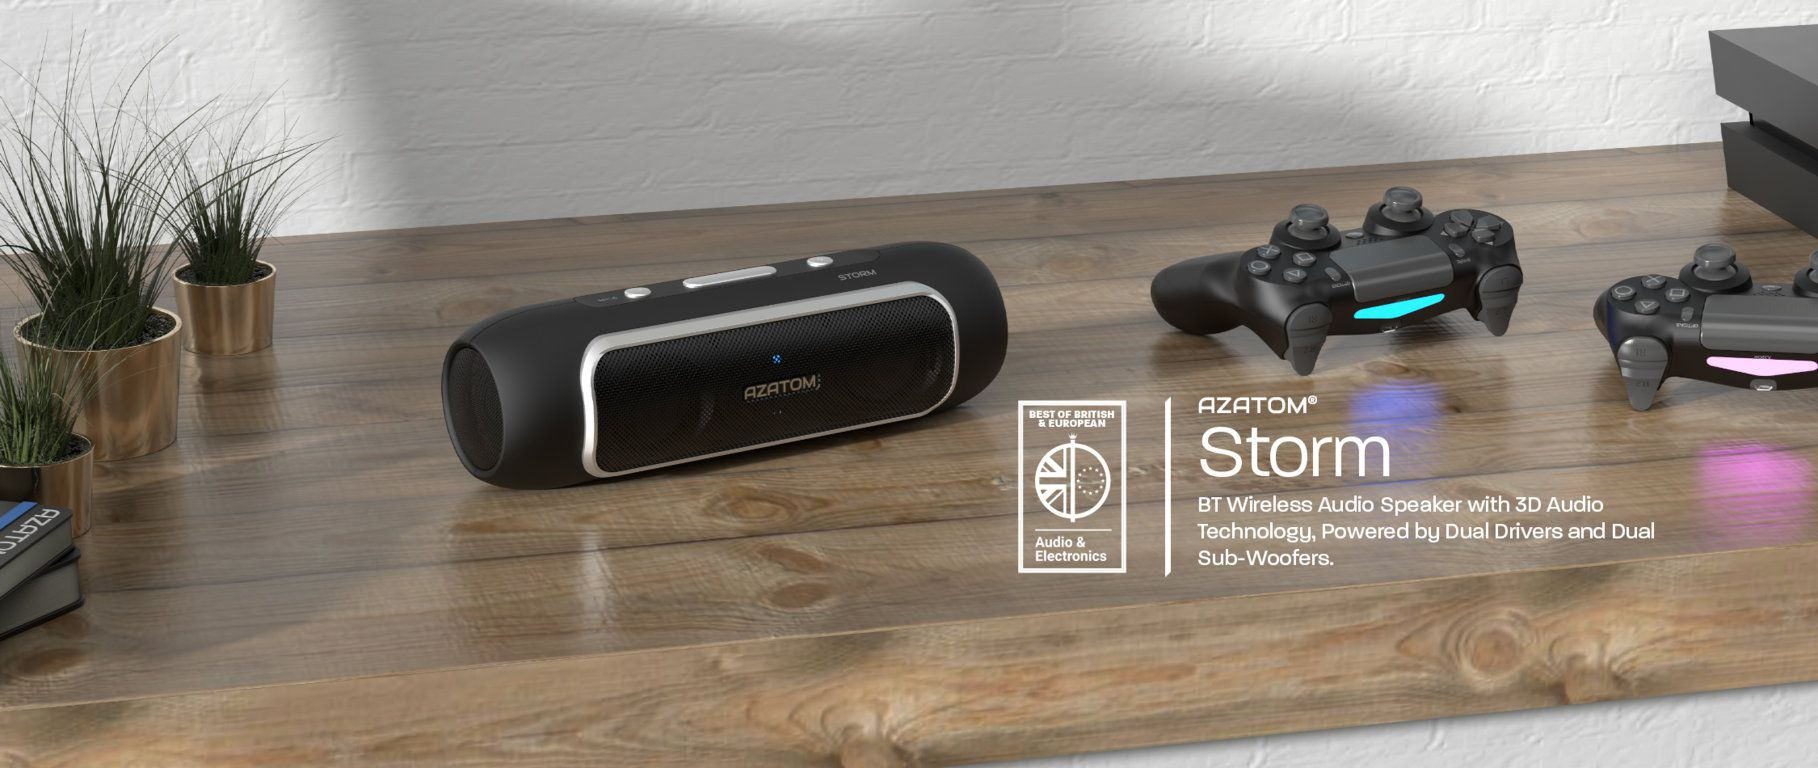 Storm Bluetooth Speakers